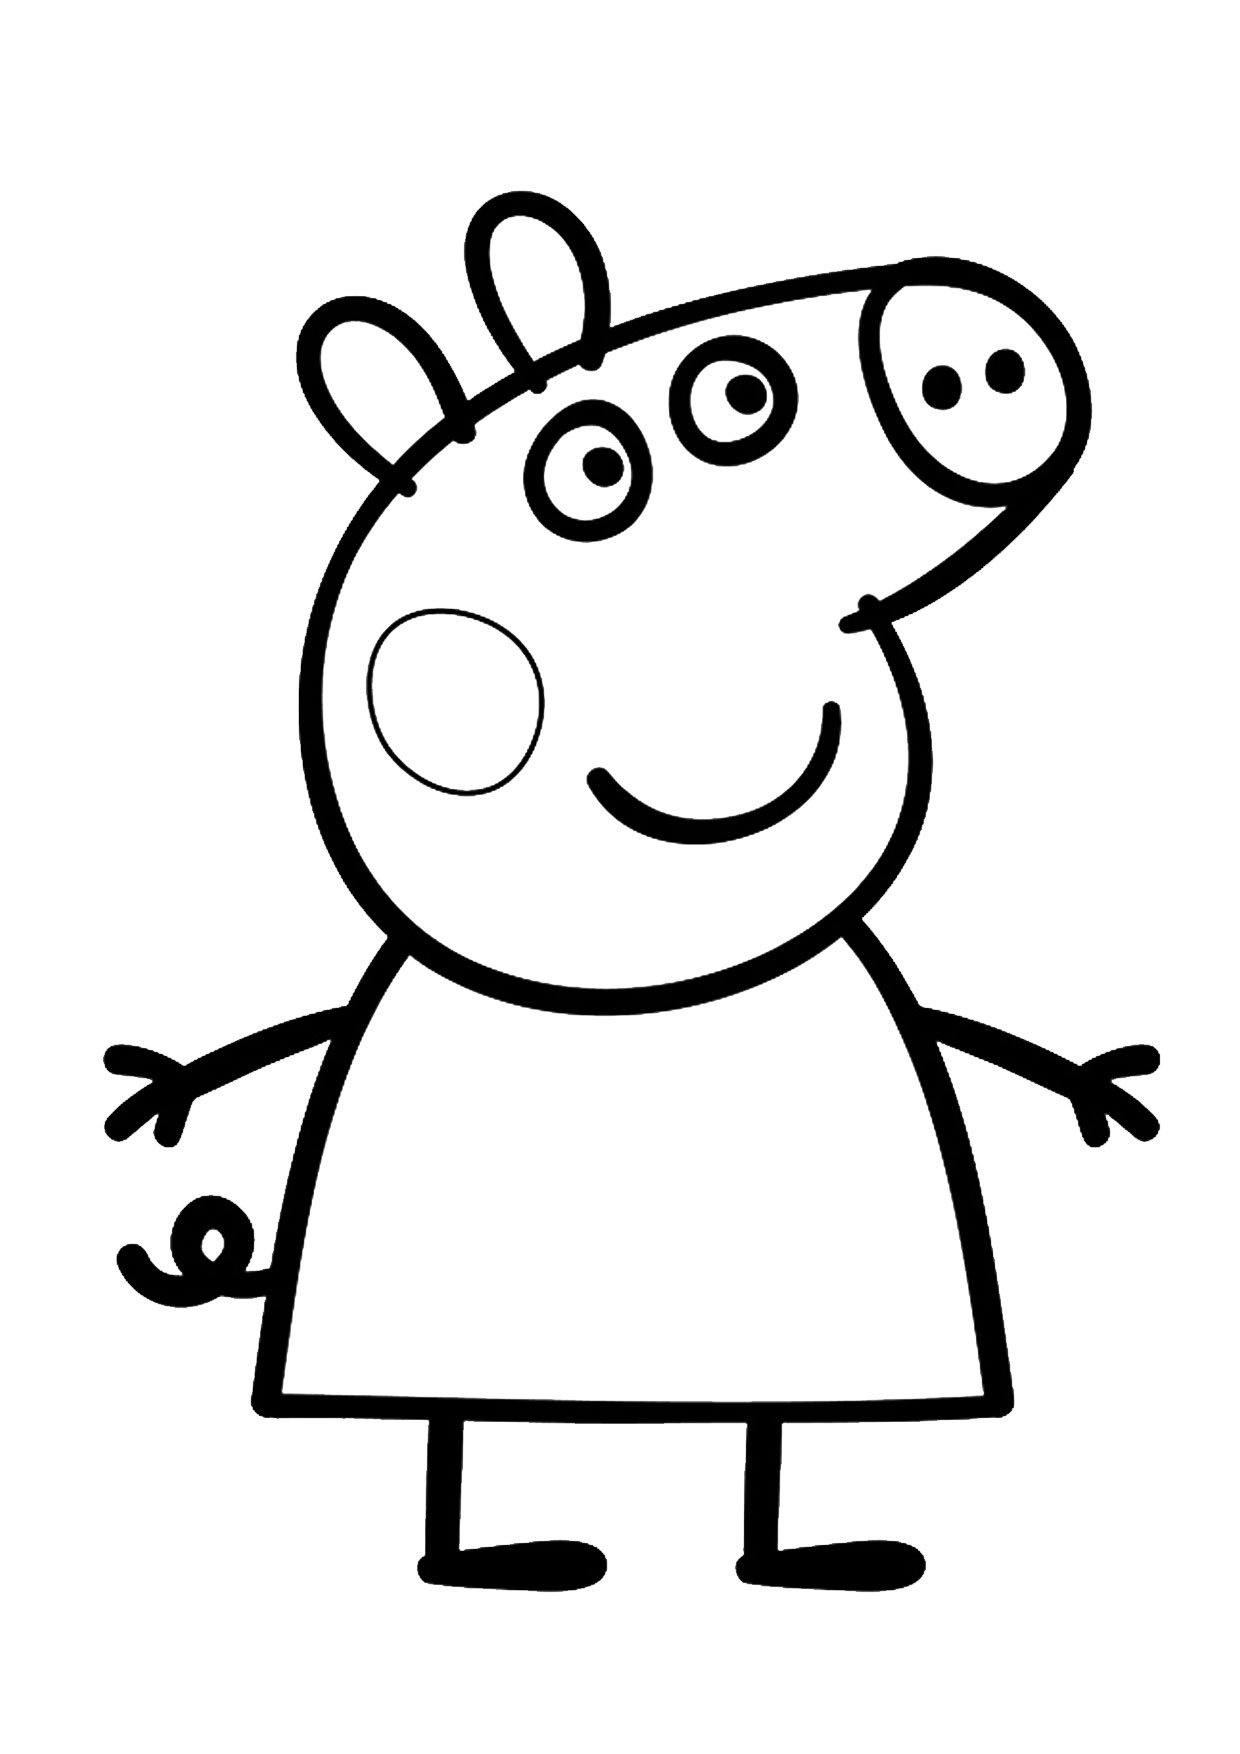 54 Disegni Di Peppa Pig Da Colorare Pianetabambini It